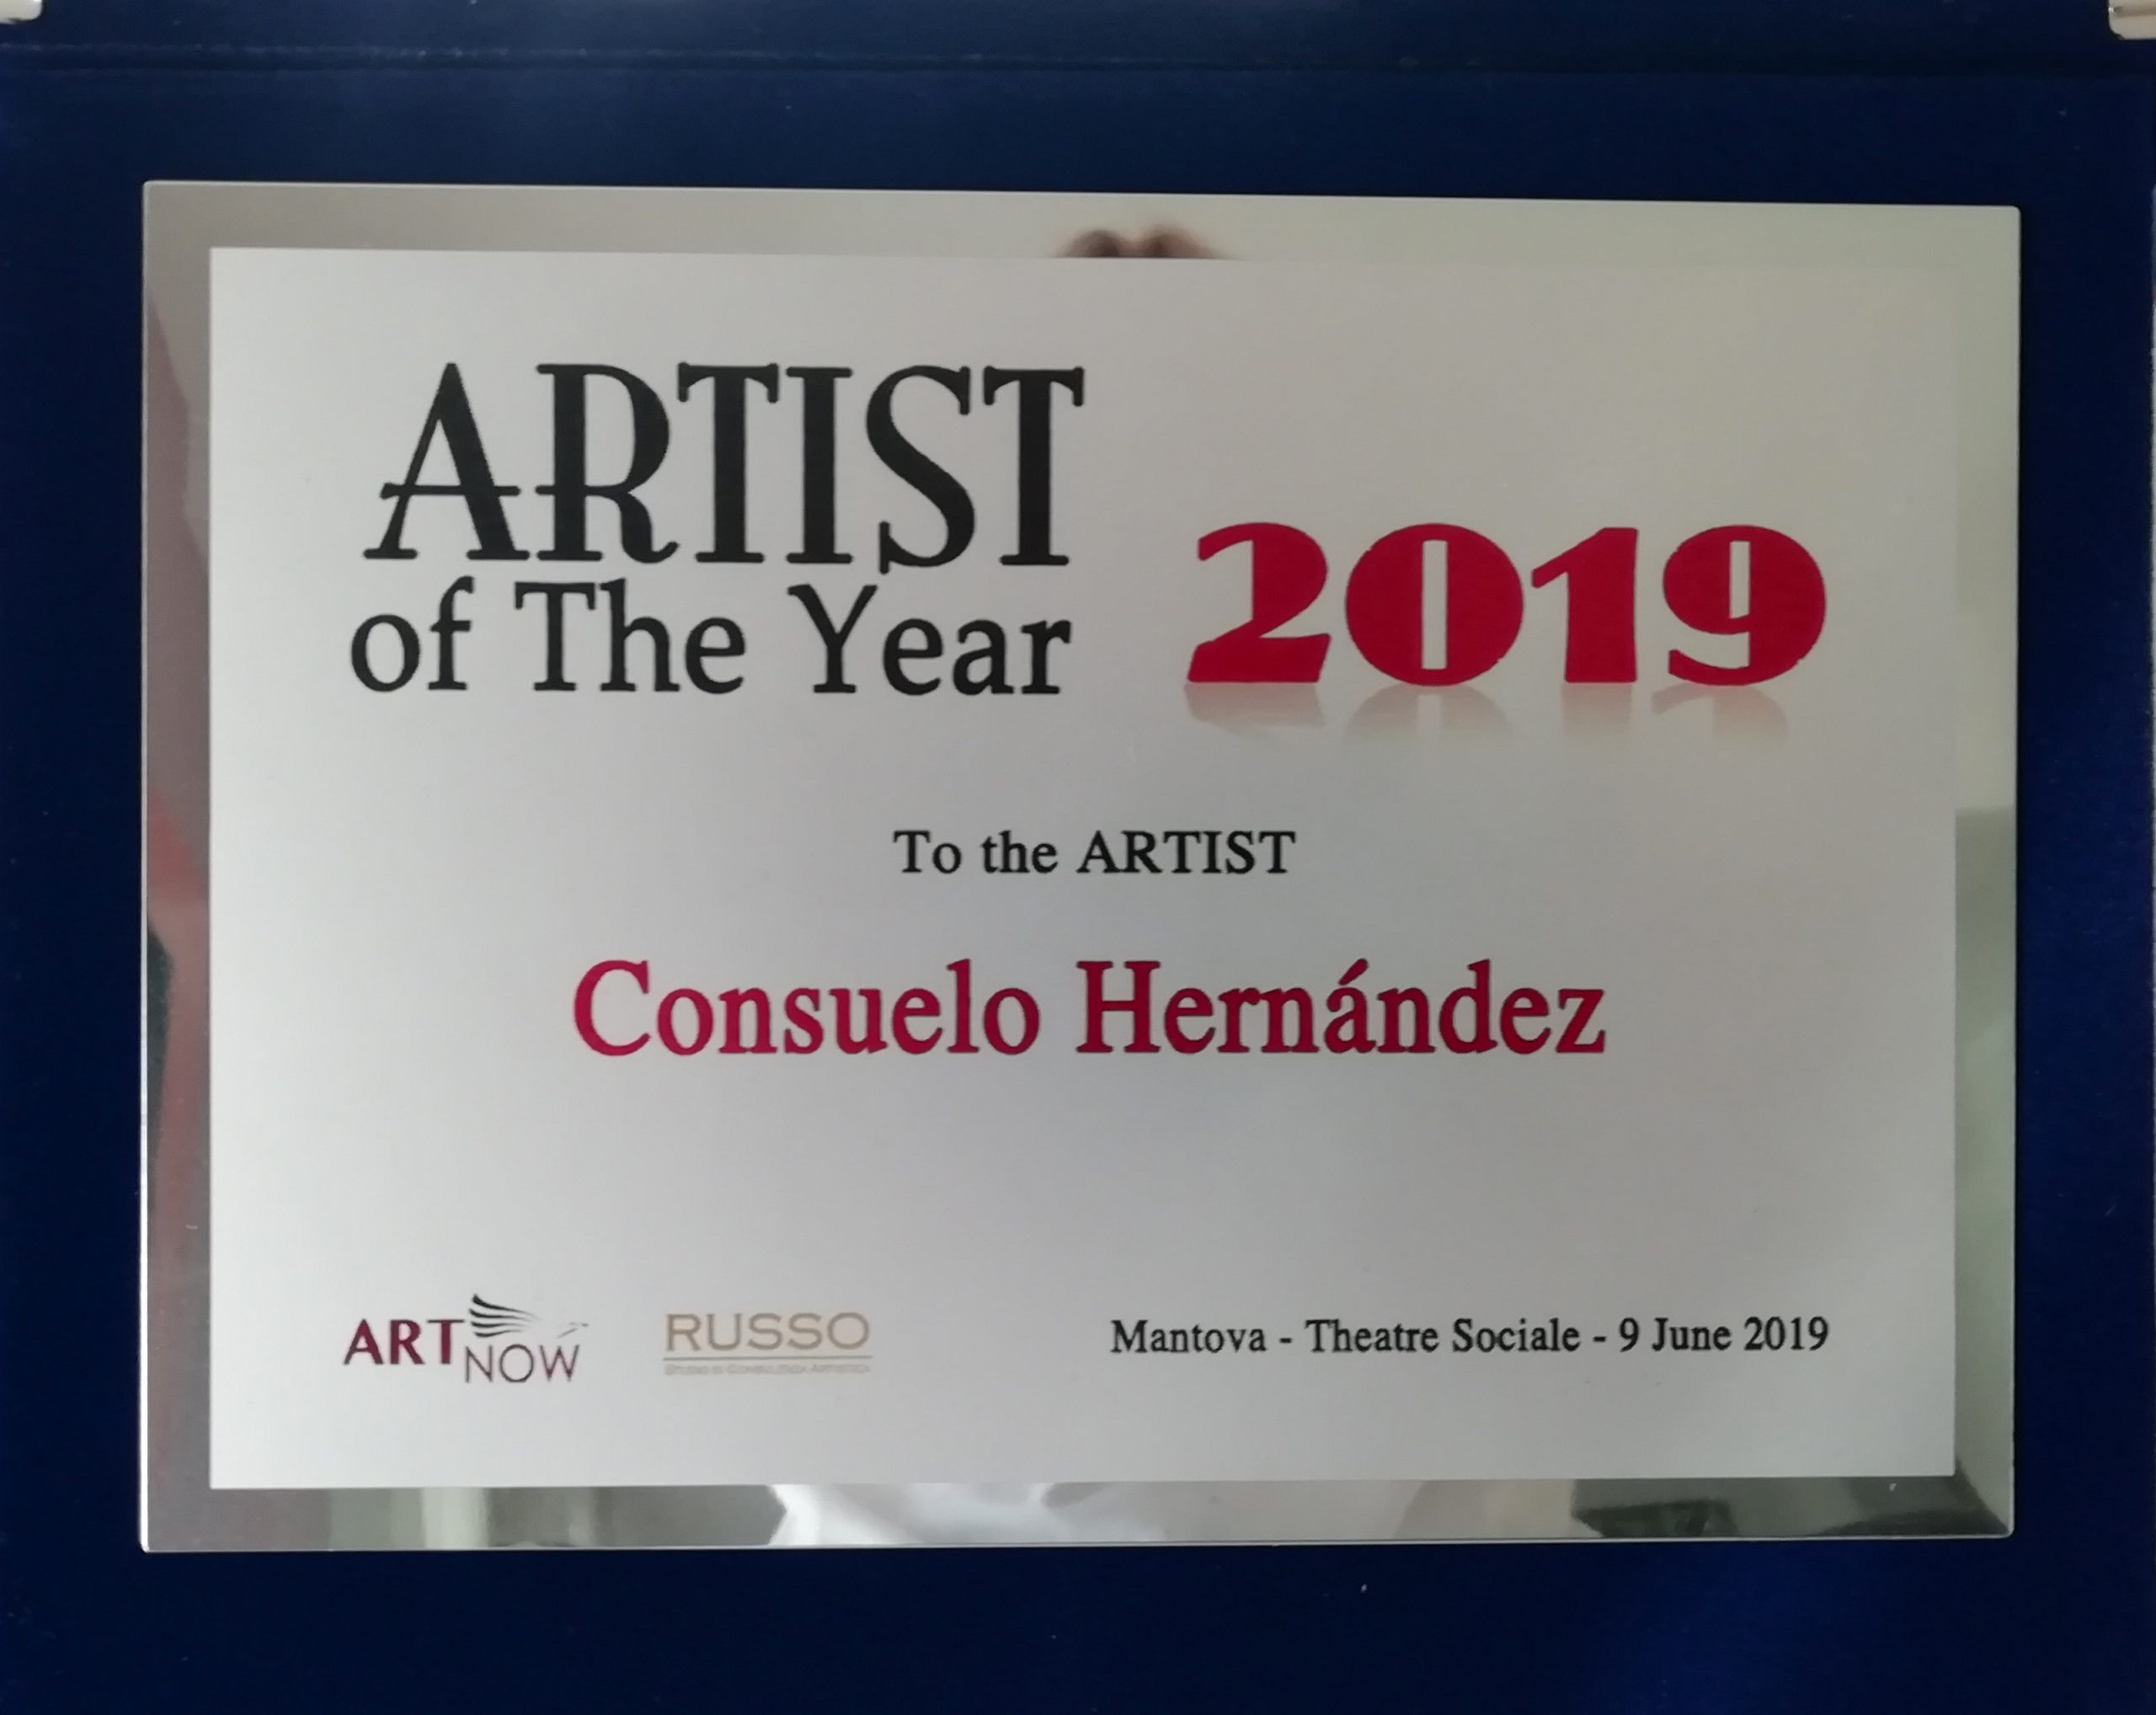 ARTIST OF The Year 2019